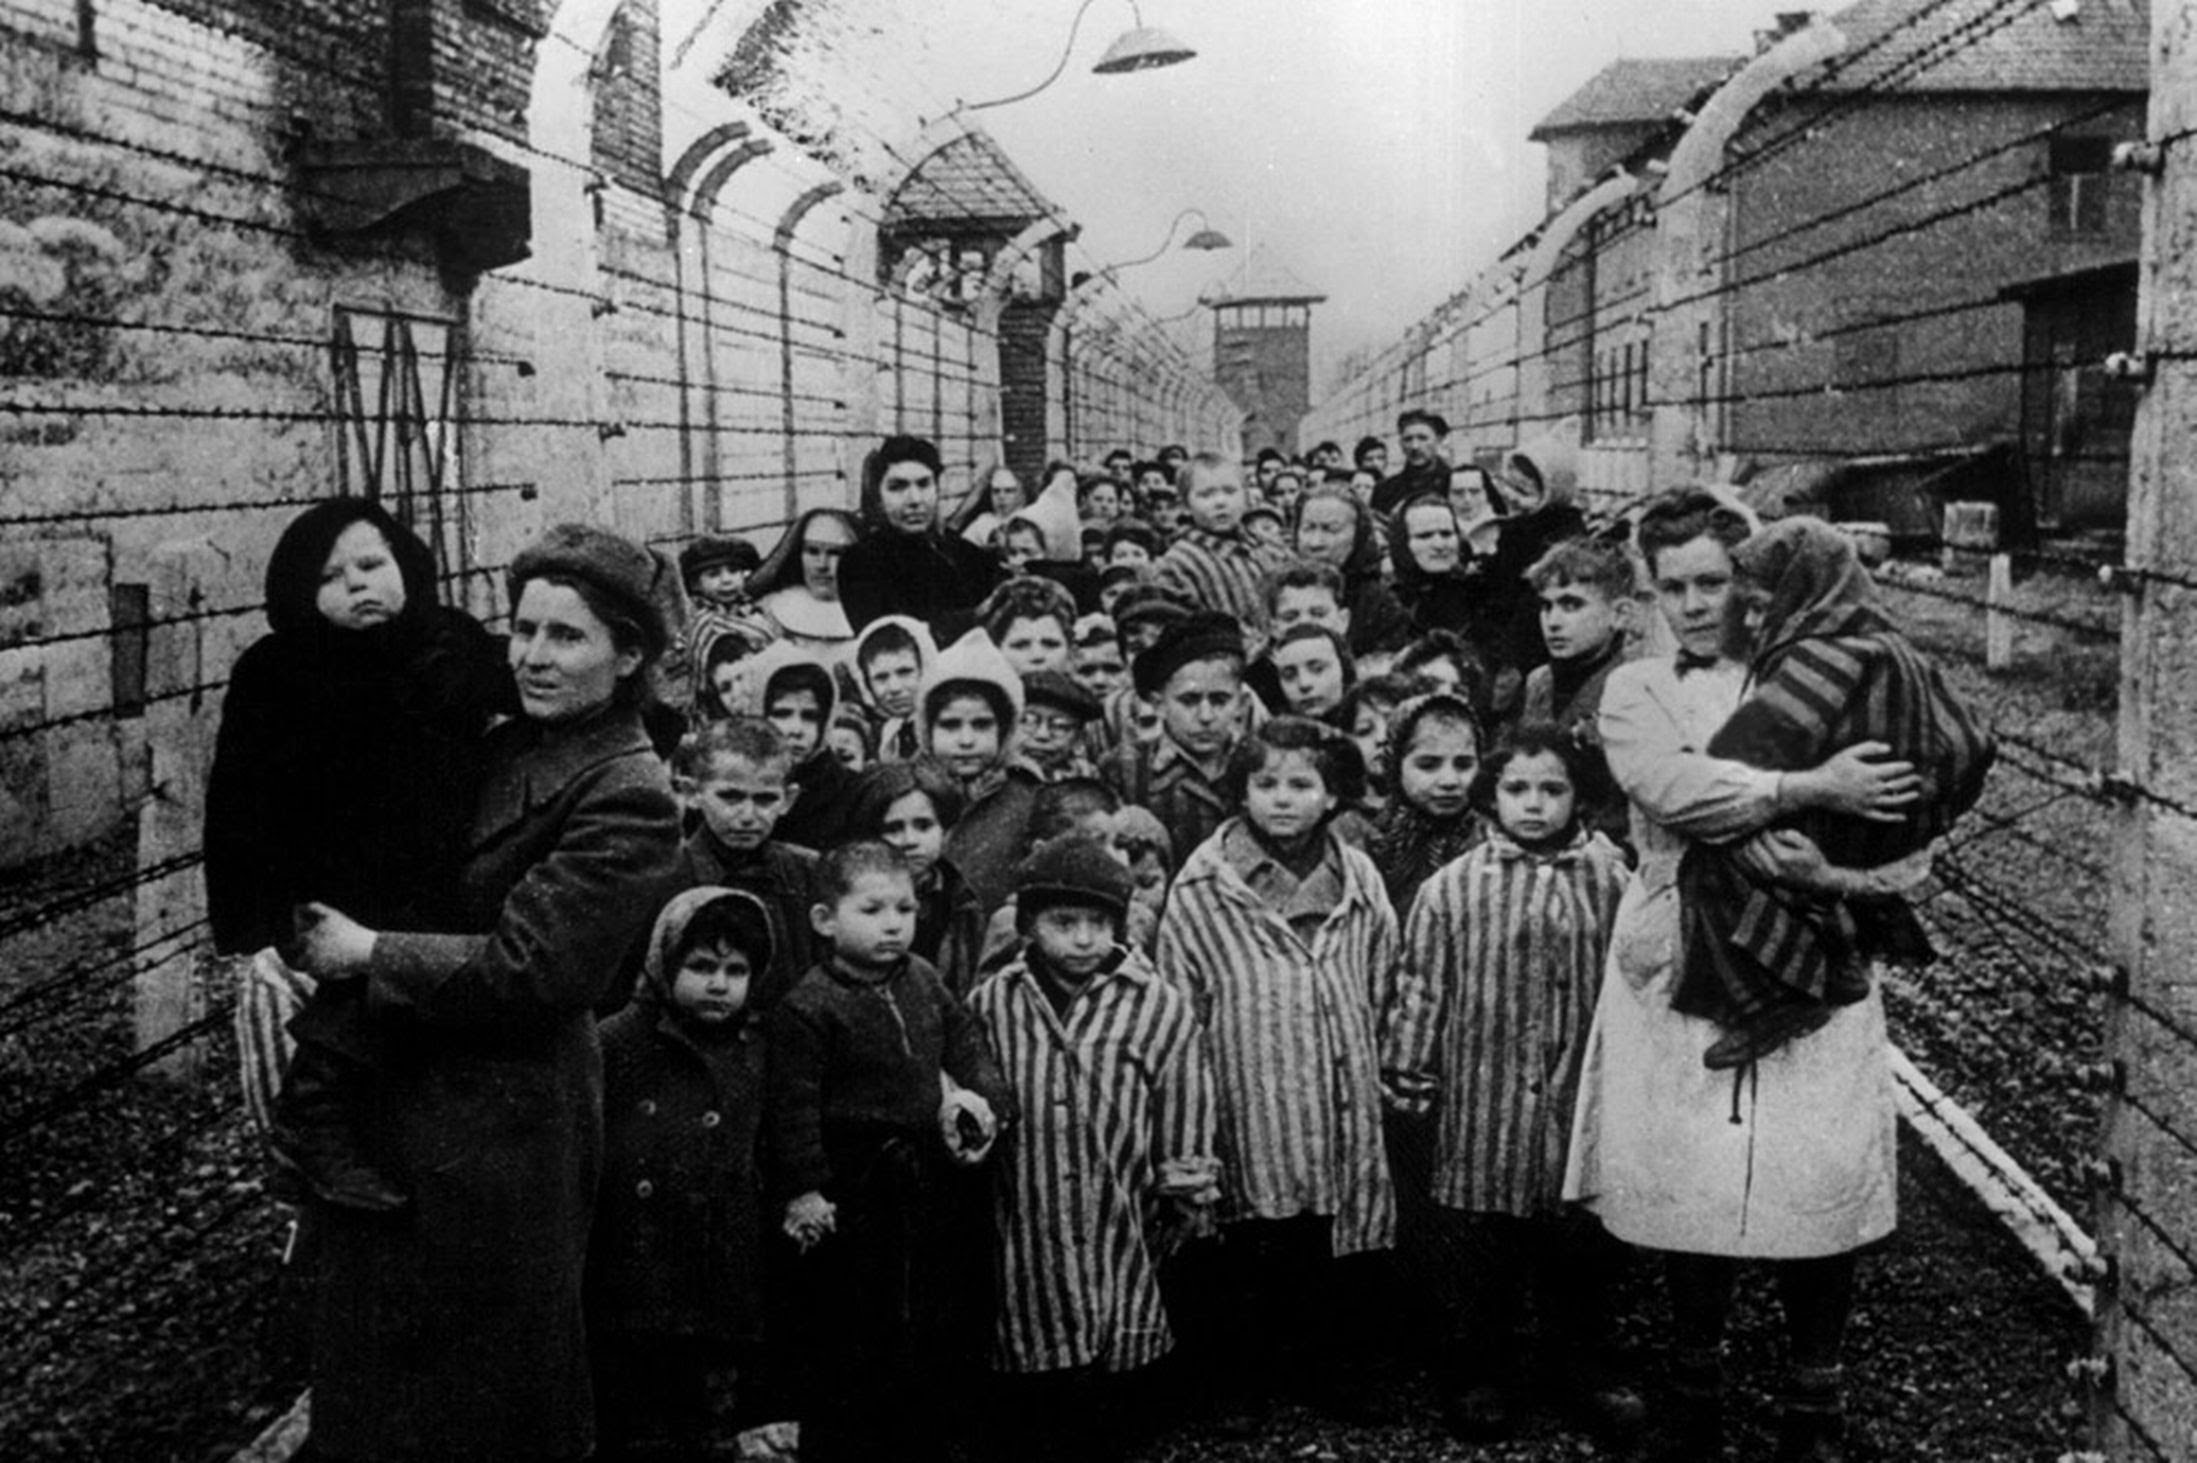 Author Edwin Black warns Holocaust survivors: Facebook, Google have unimaginable censorship powers